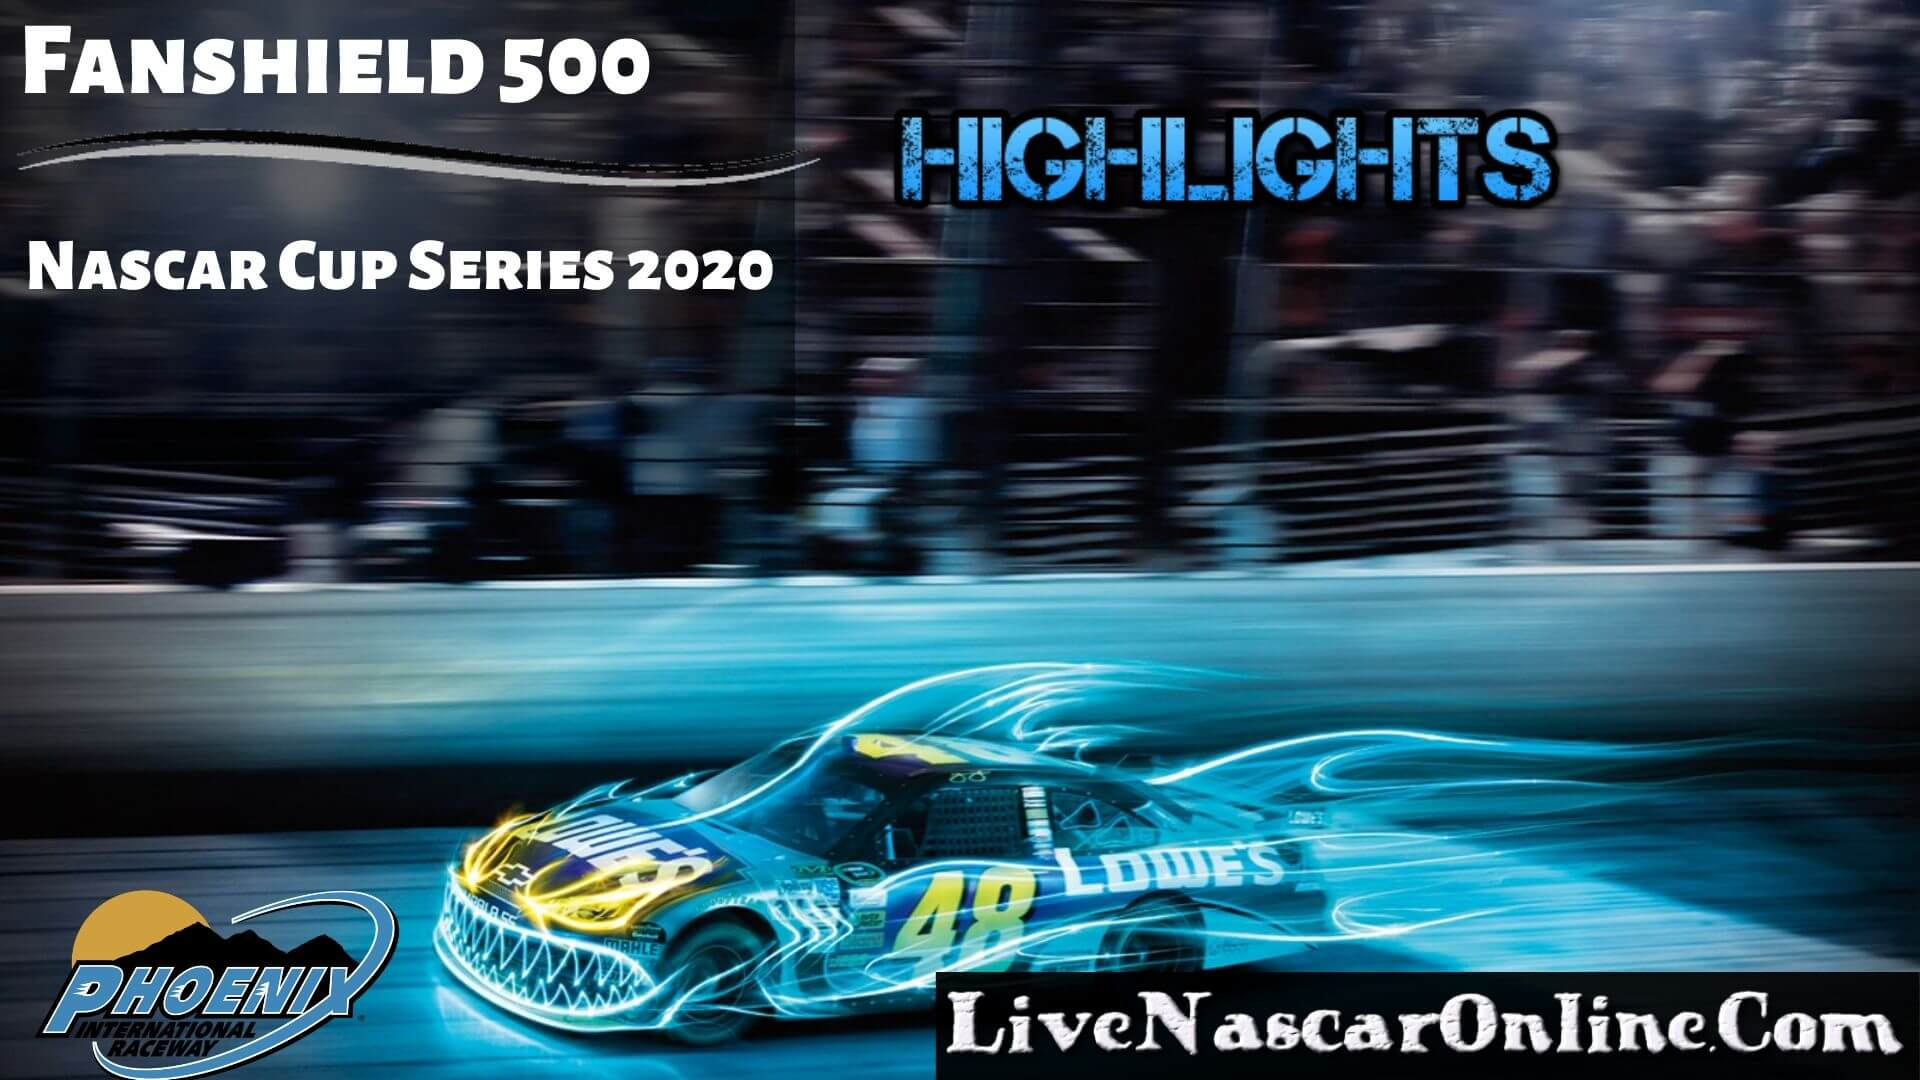 Fanshield 500 Nascar Cup Highlights 2020